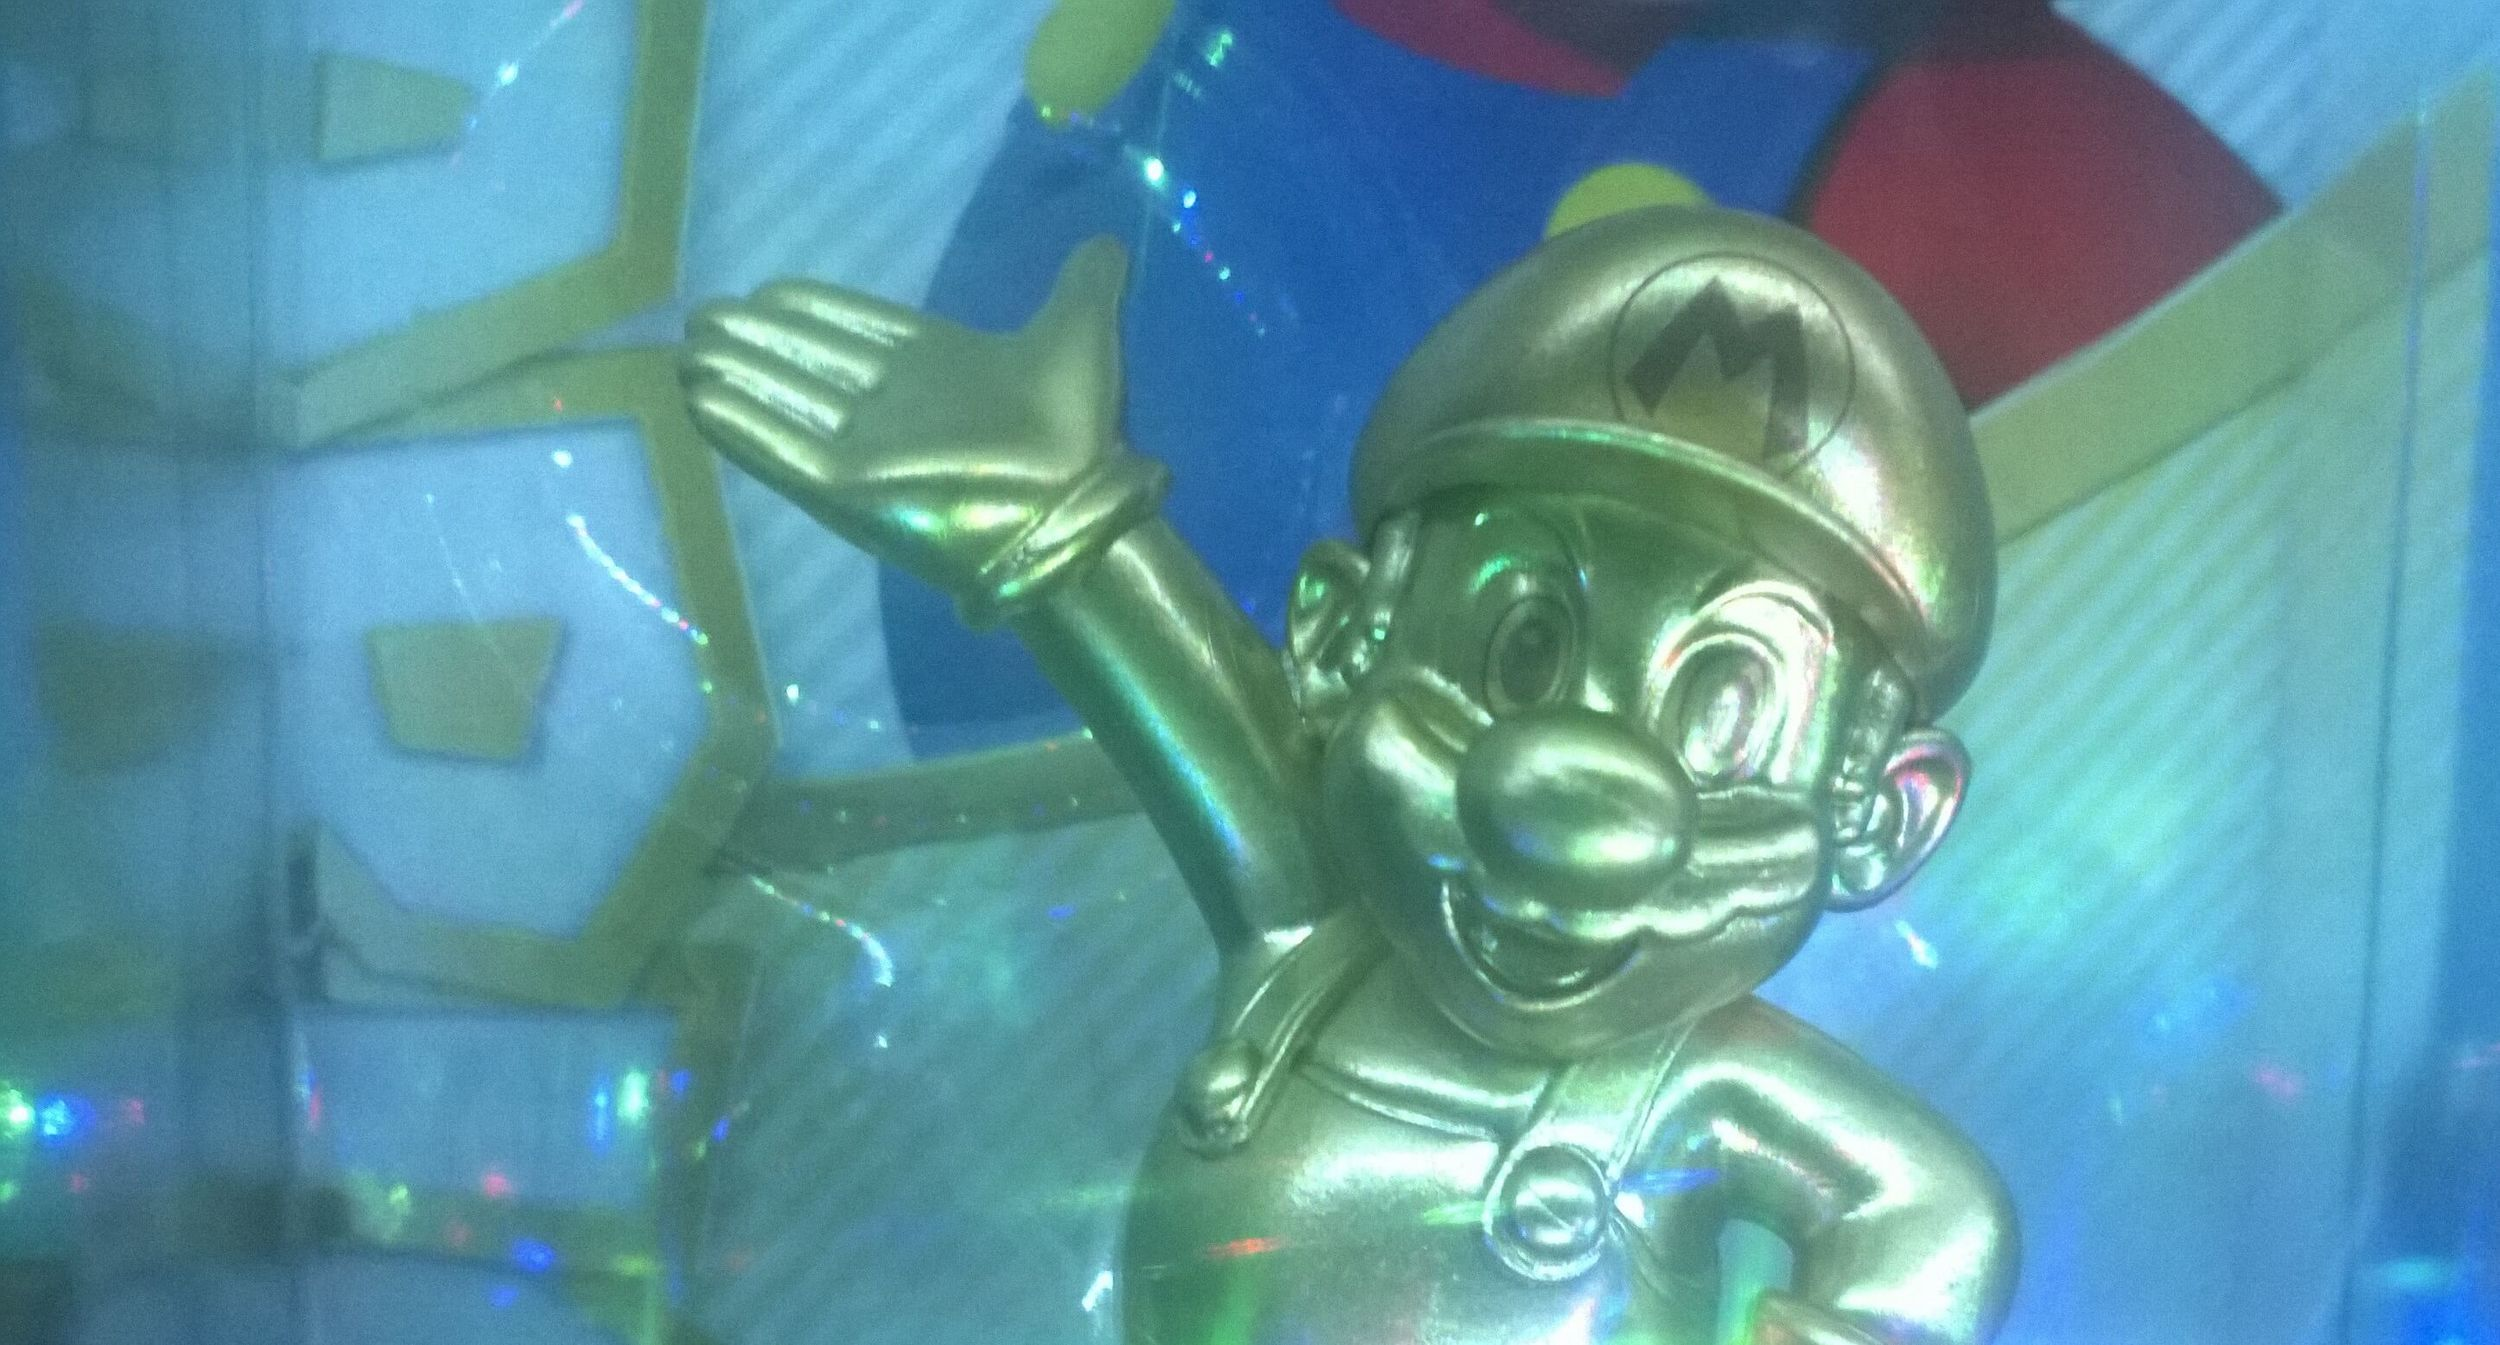 Gold Mario in box. Taken 6.2.15